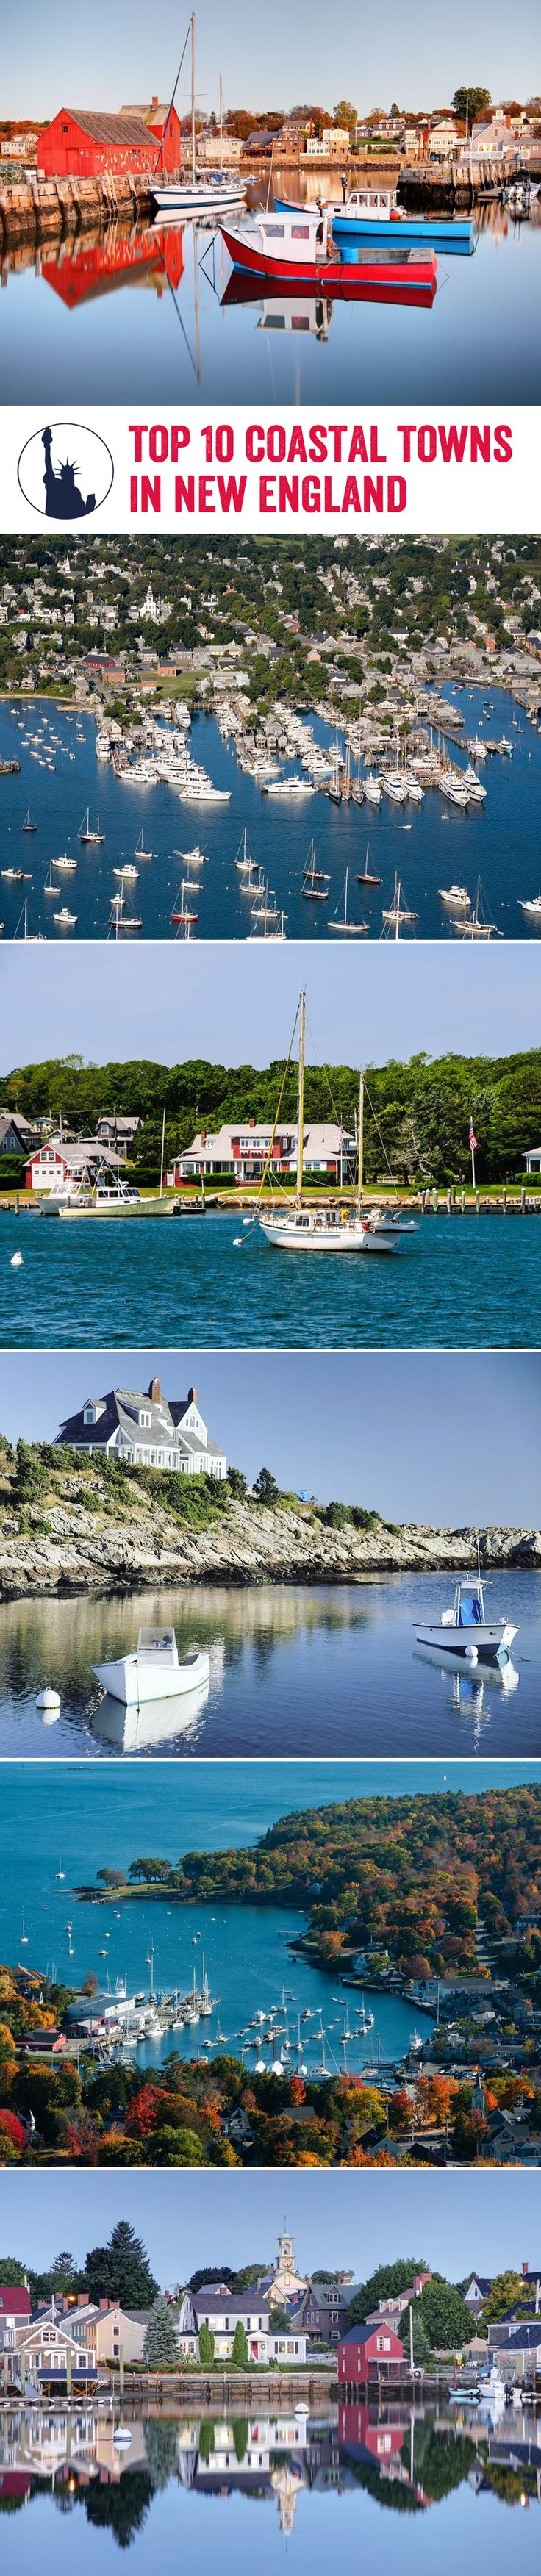 New England's coastal towns truly evoke a wonderful charm. Here's our top 10 to visit